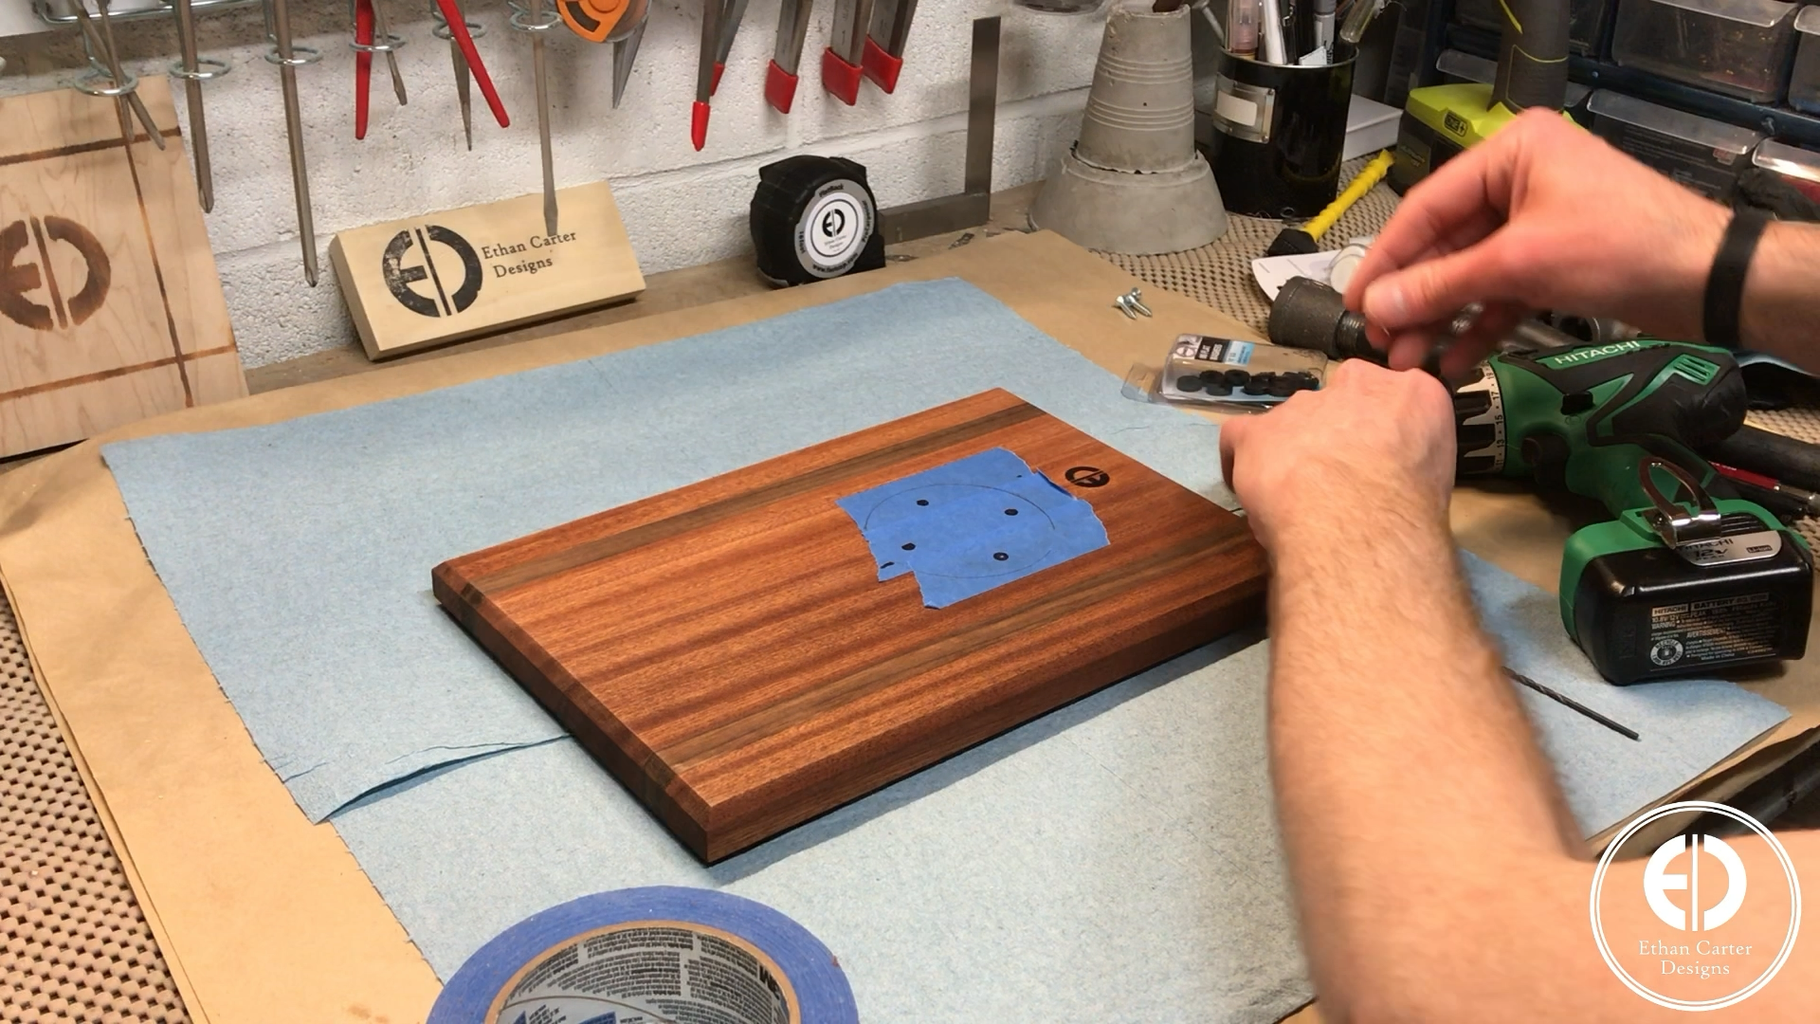 Attaching the Flange to the Tabletop